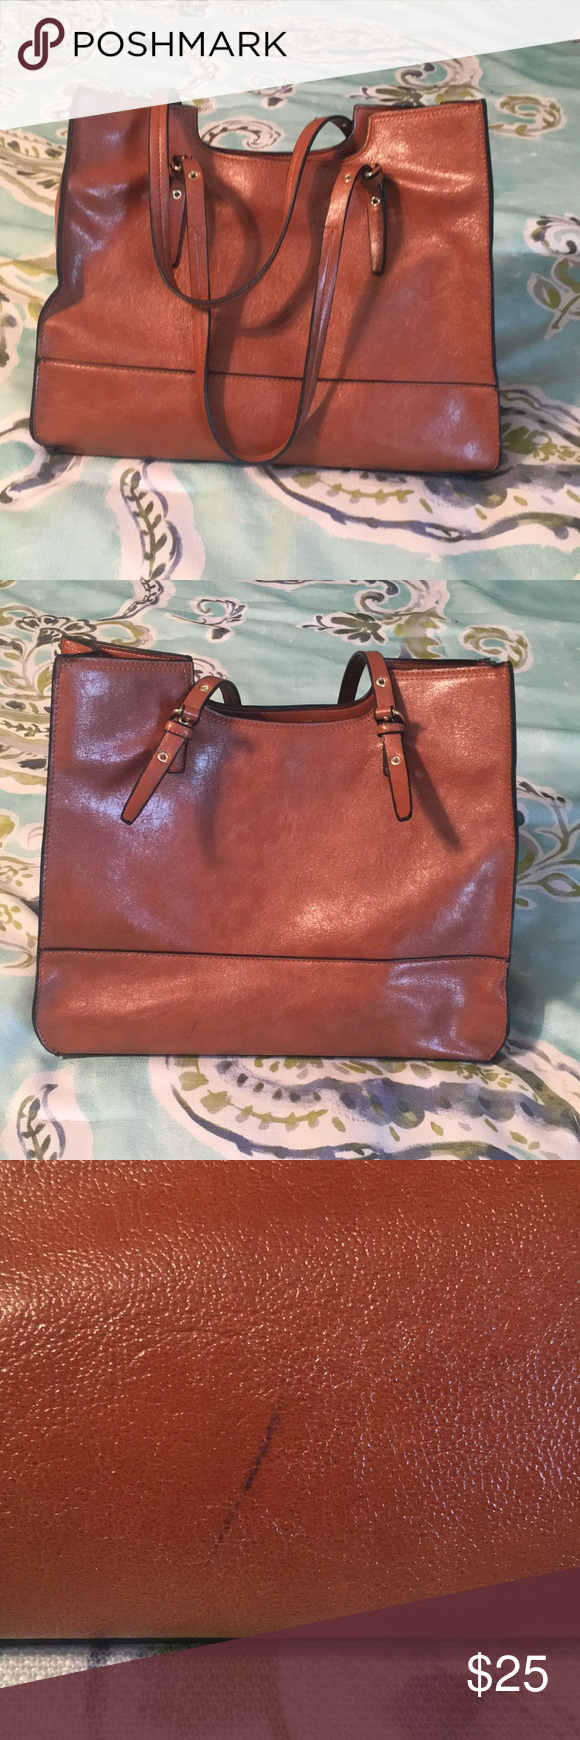 Brown leather-like purse Simple brown leather purse Smoke free home Minor scratches but in great condition  Lots of storage space! Bags Shoulder Bags